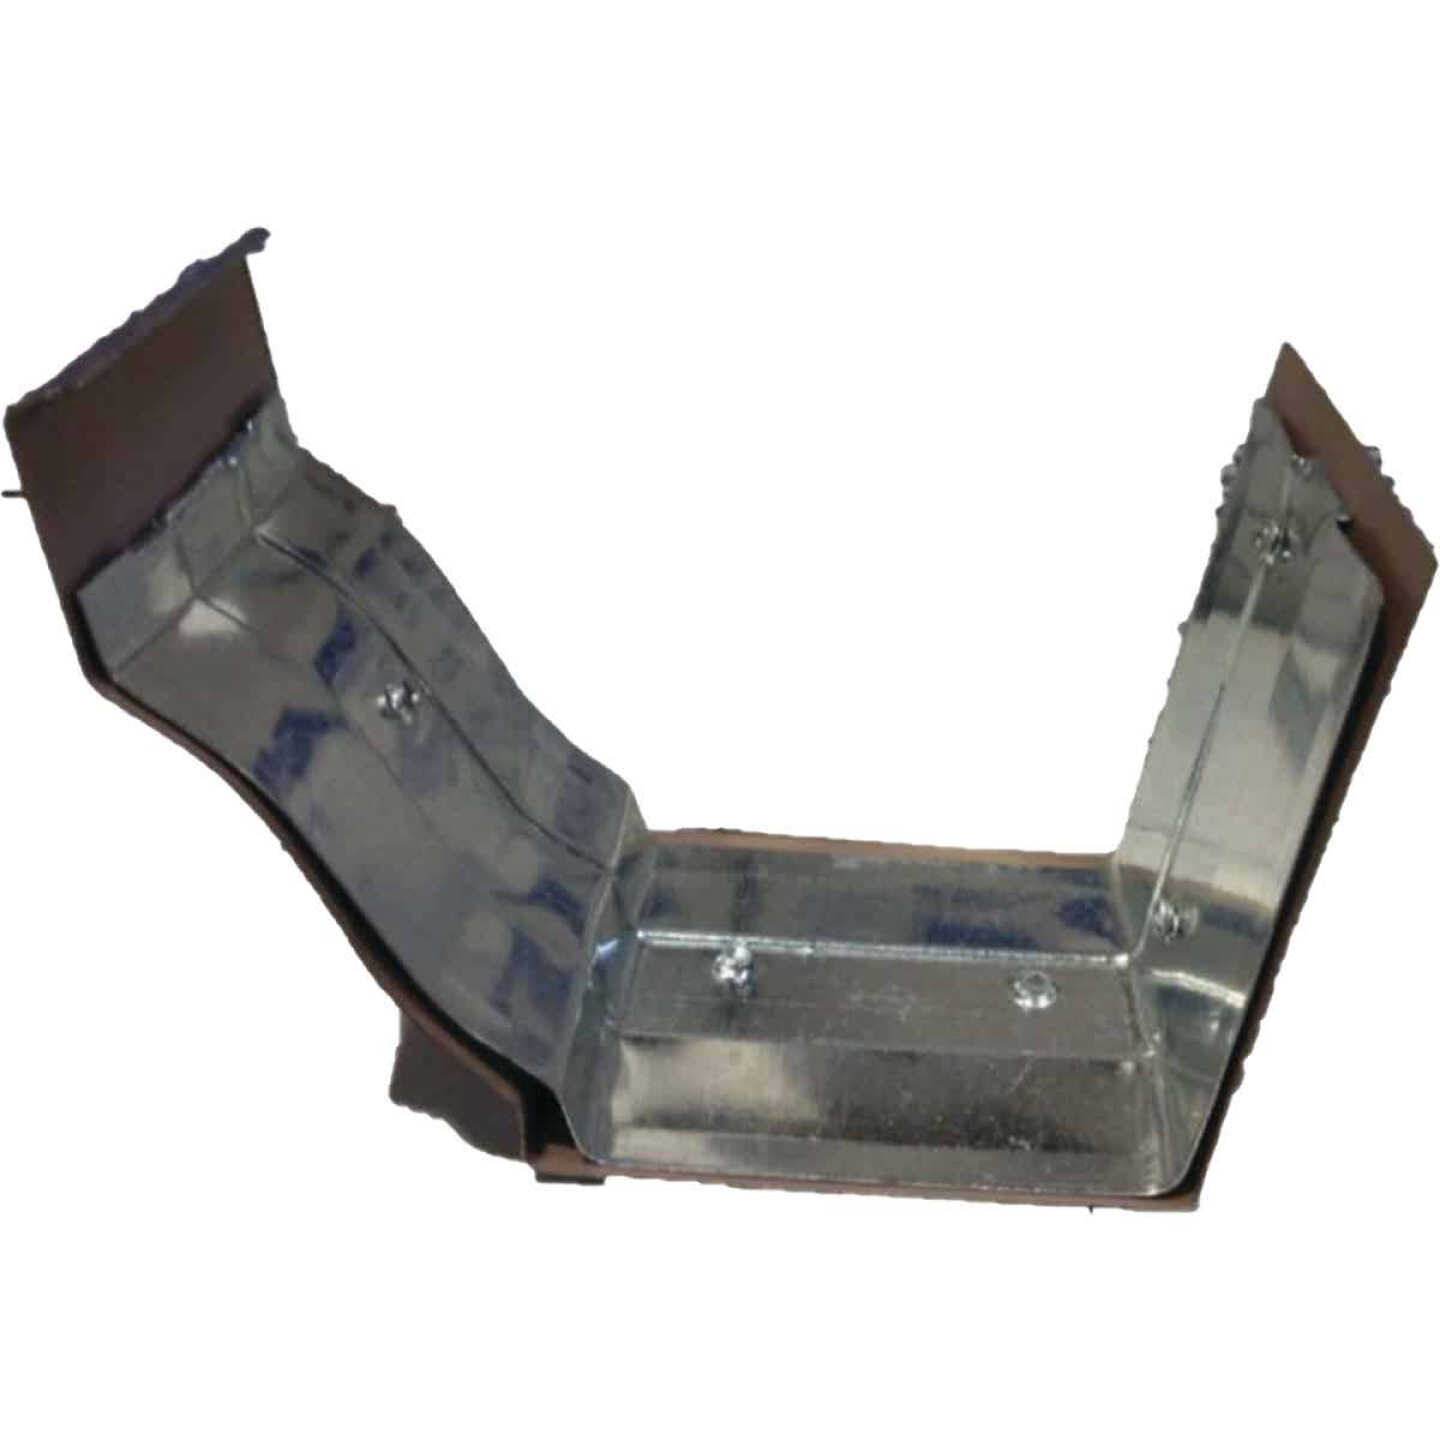 NorWesco 4 In. Galvanized Brown Slip-Joint Gutter Connector Image 2